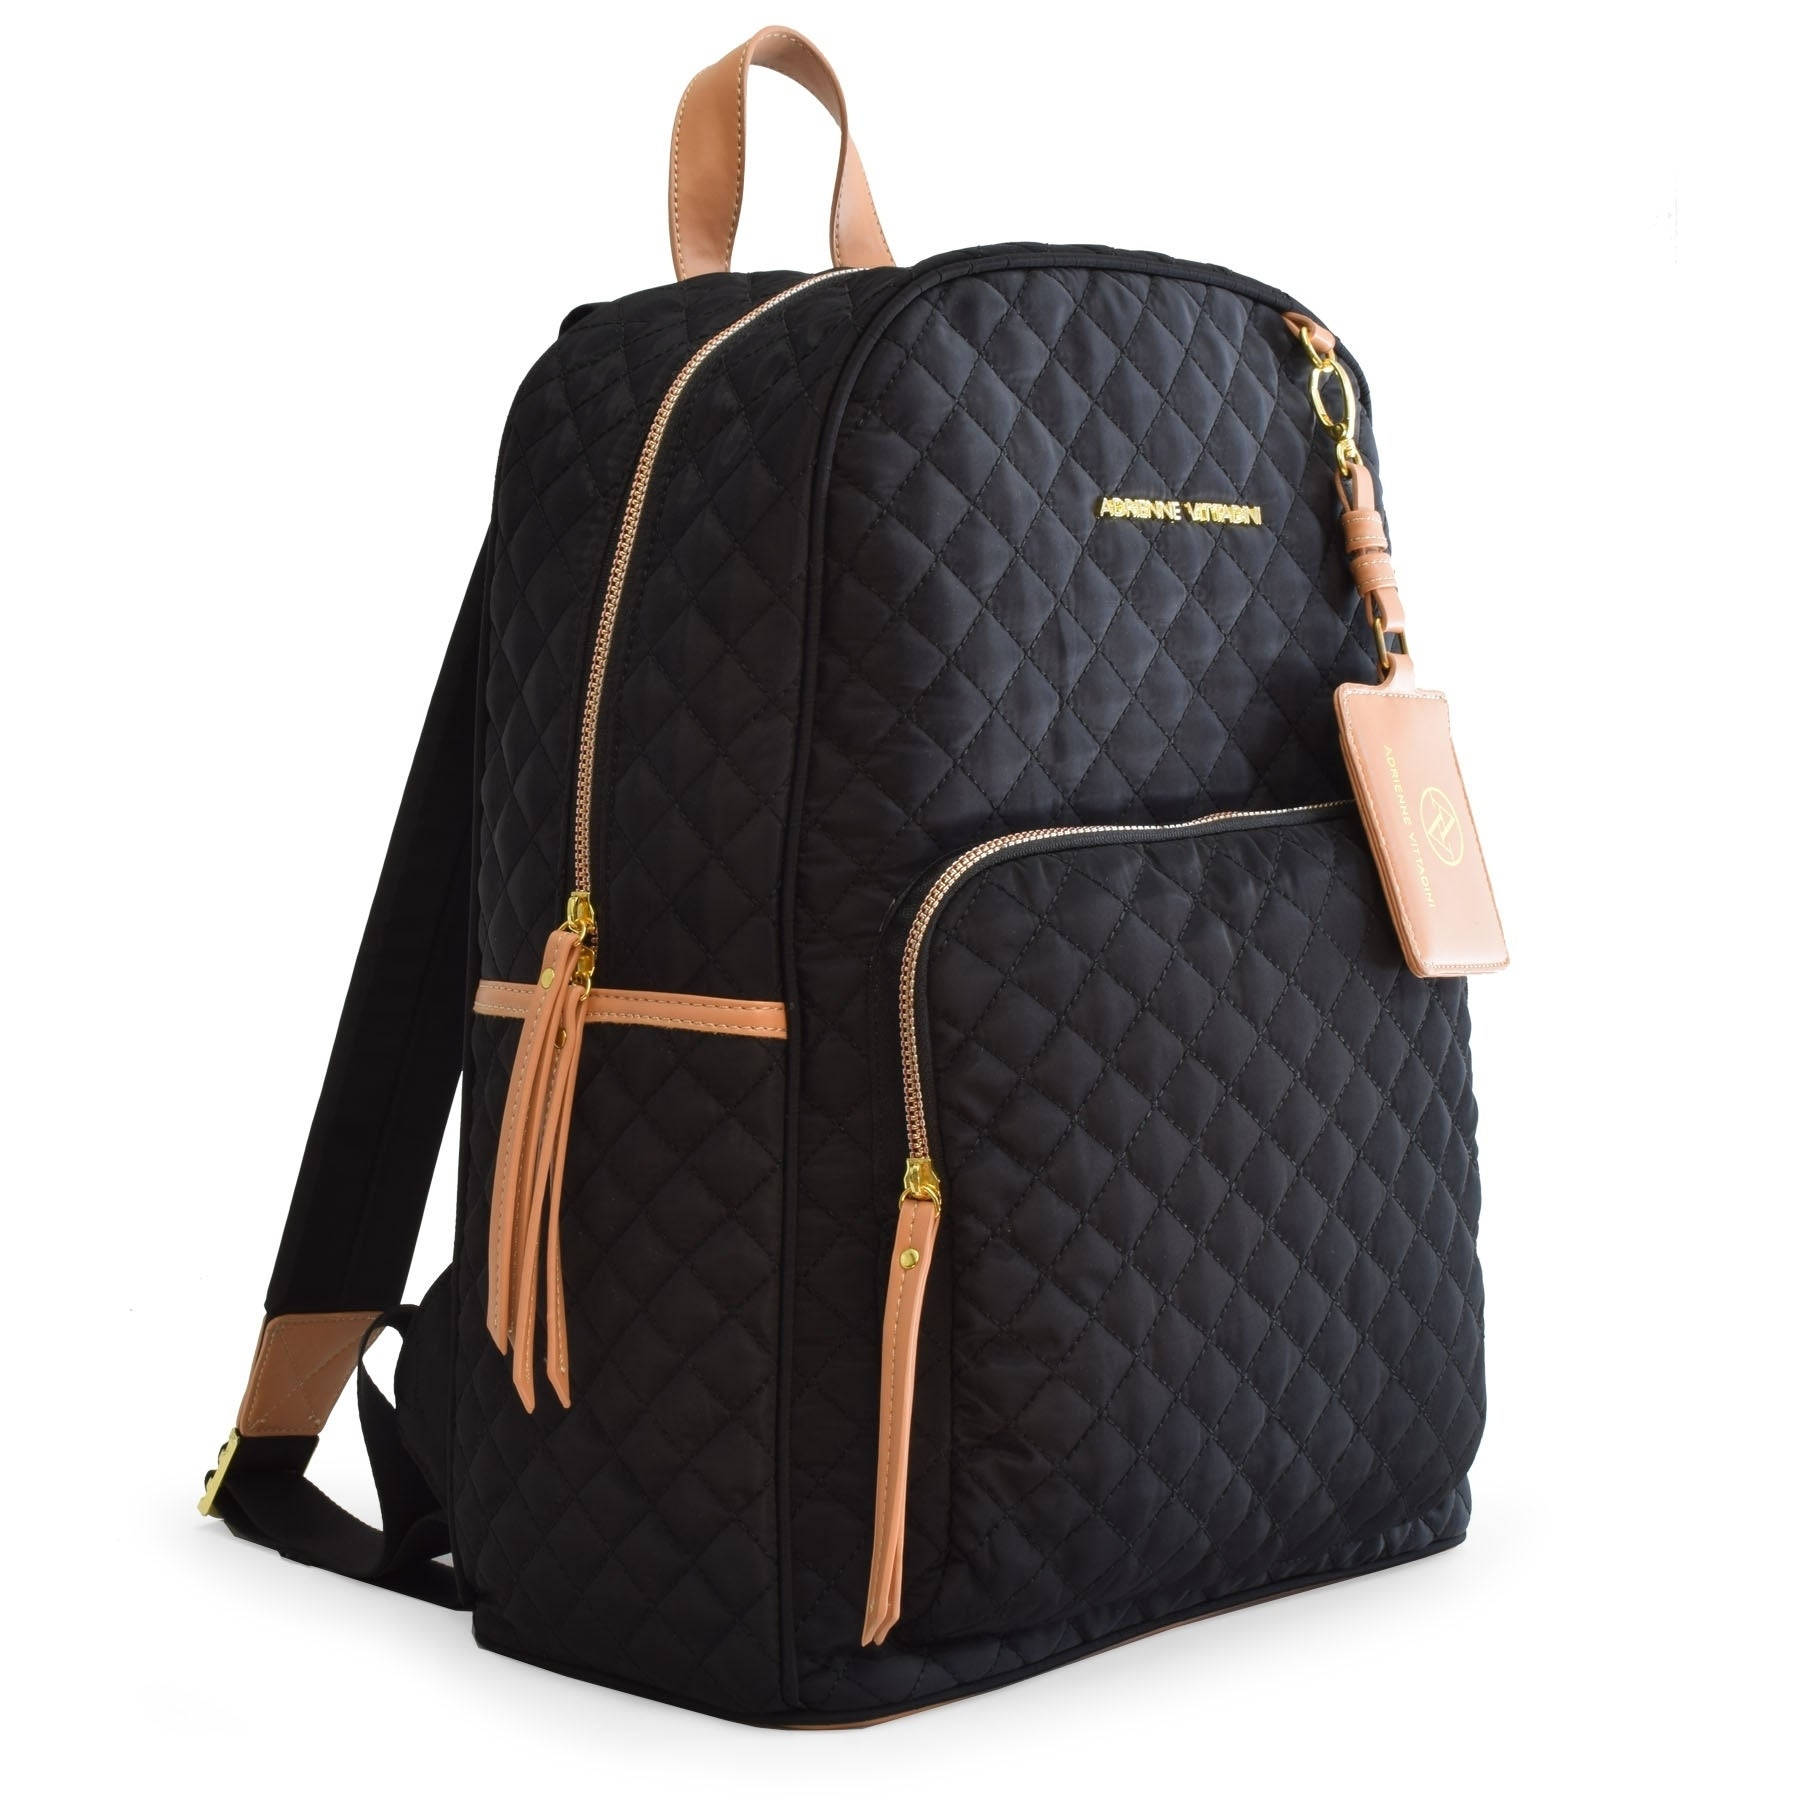 Adrienne Vittadini Quilted Backpack with 13 Inch Padded Laptop Sleeve-Black b97385a71d